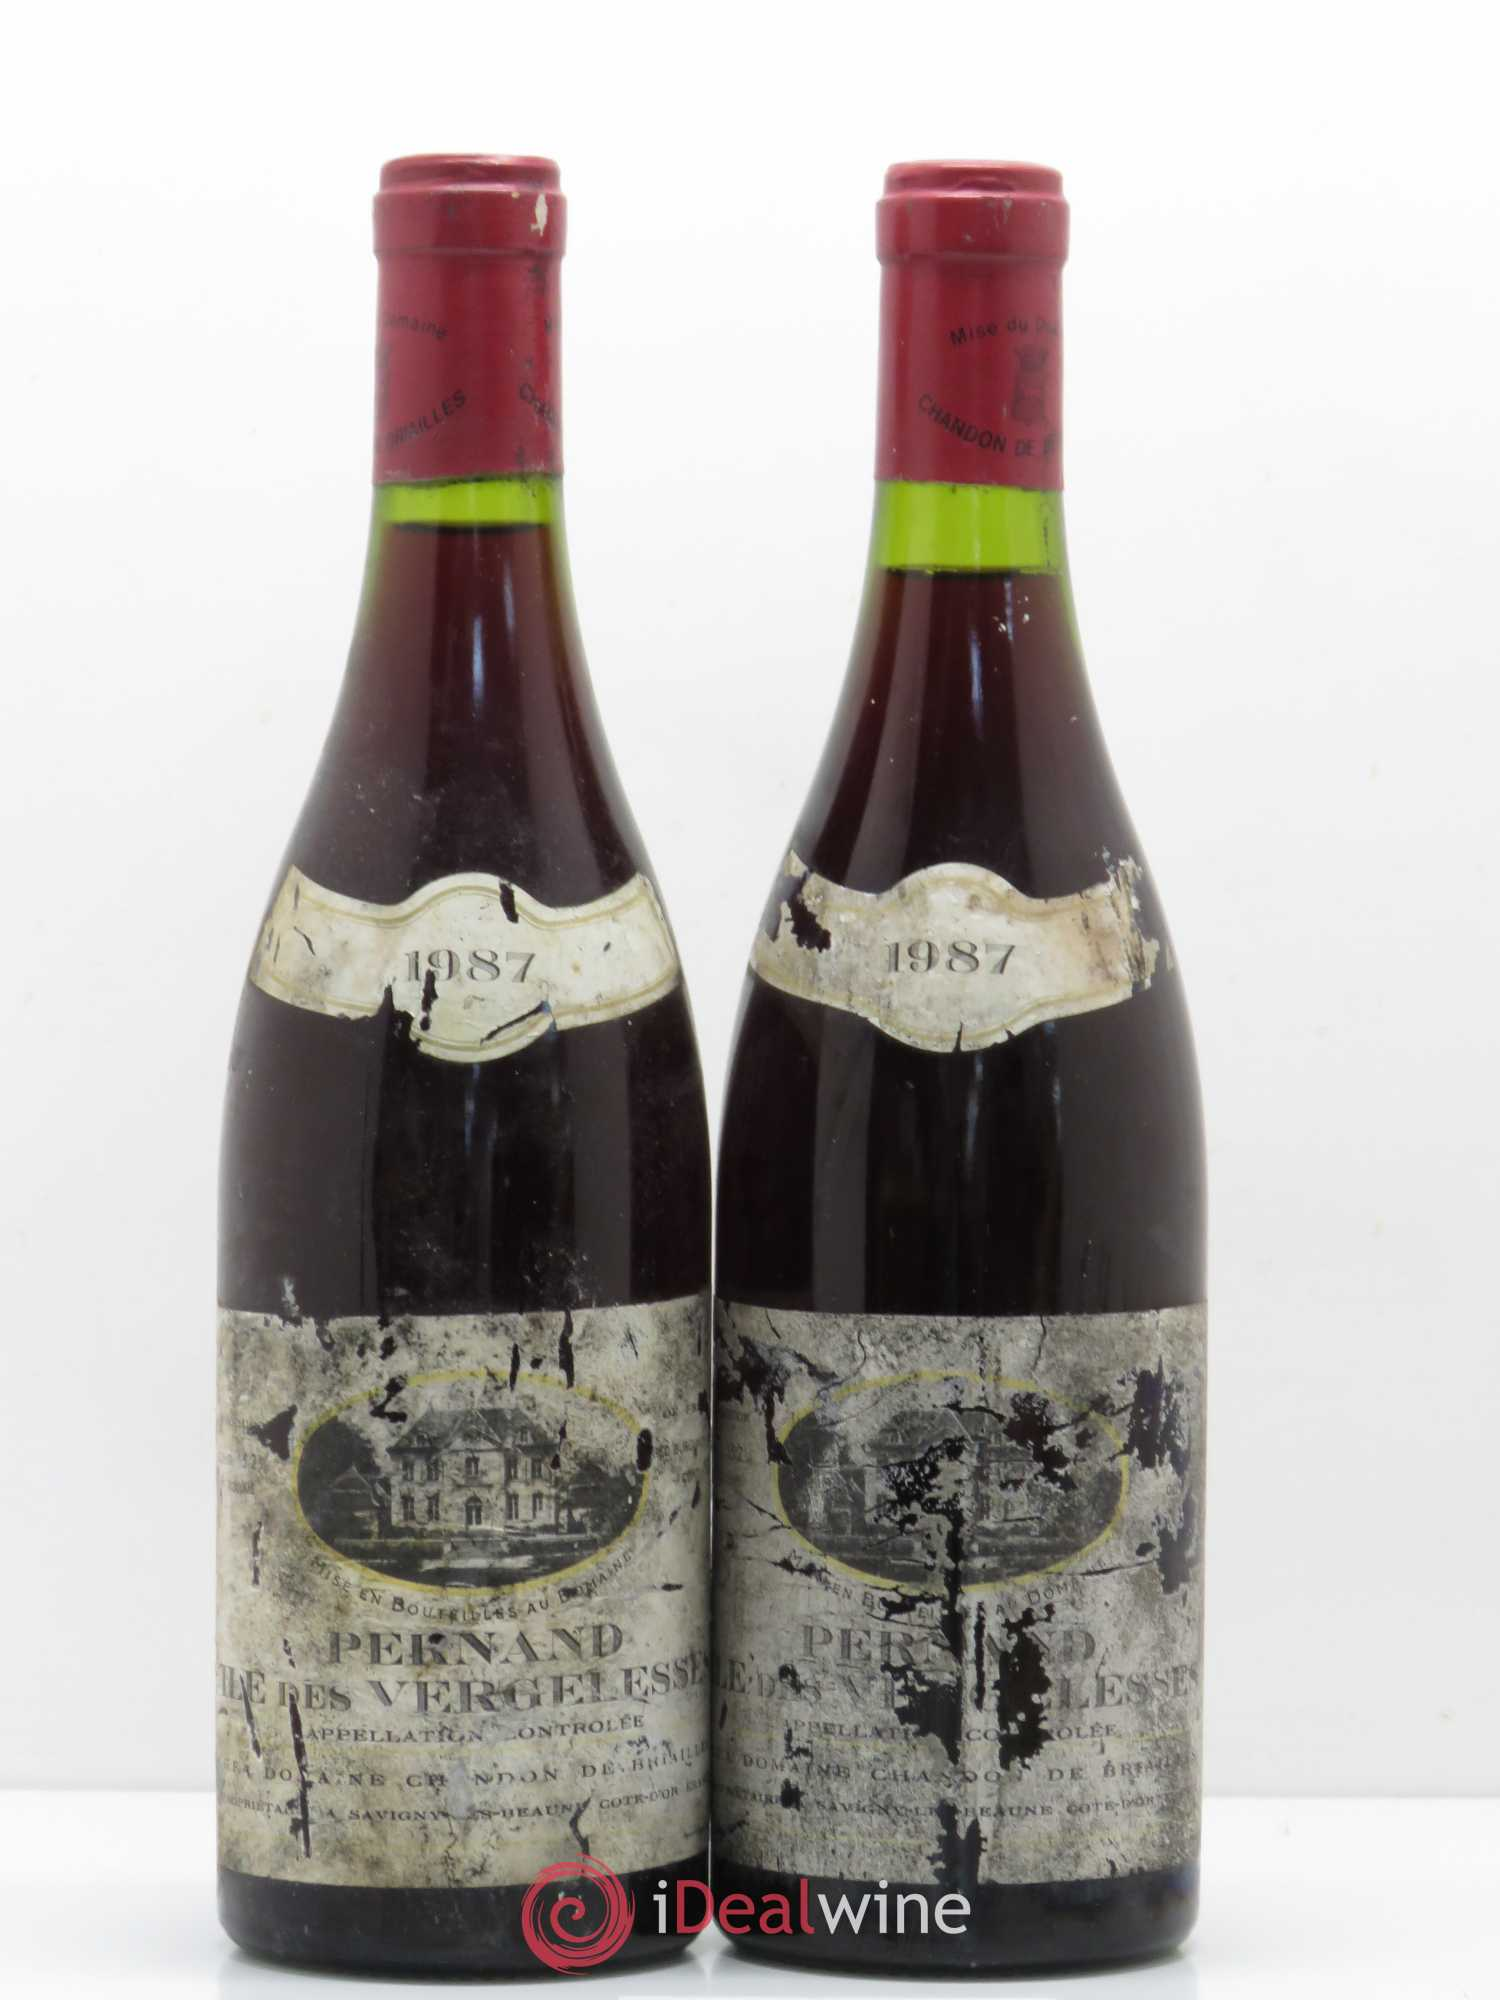 Pernand-Vergelesses 1er Cru Ile des Vergelesses Chandon de Briailles  1987 - Lot of 2 Bottles